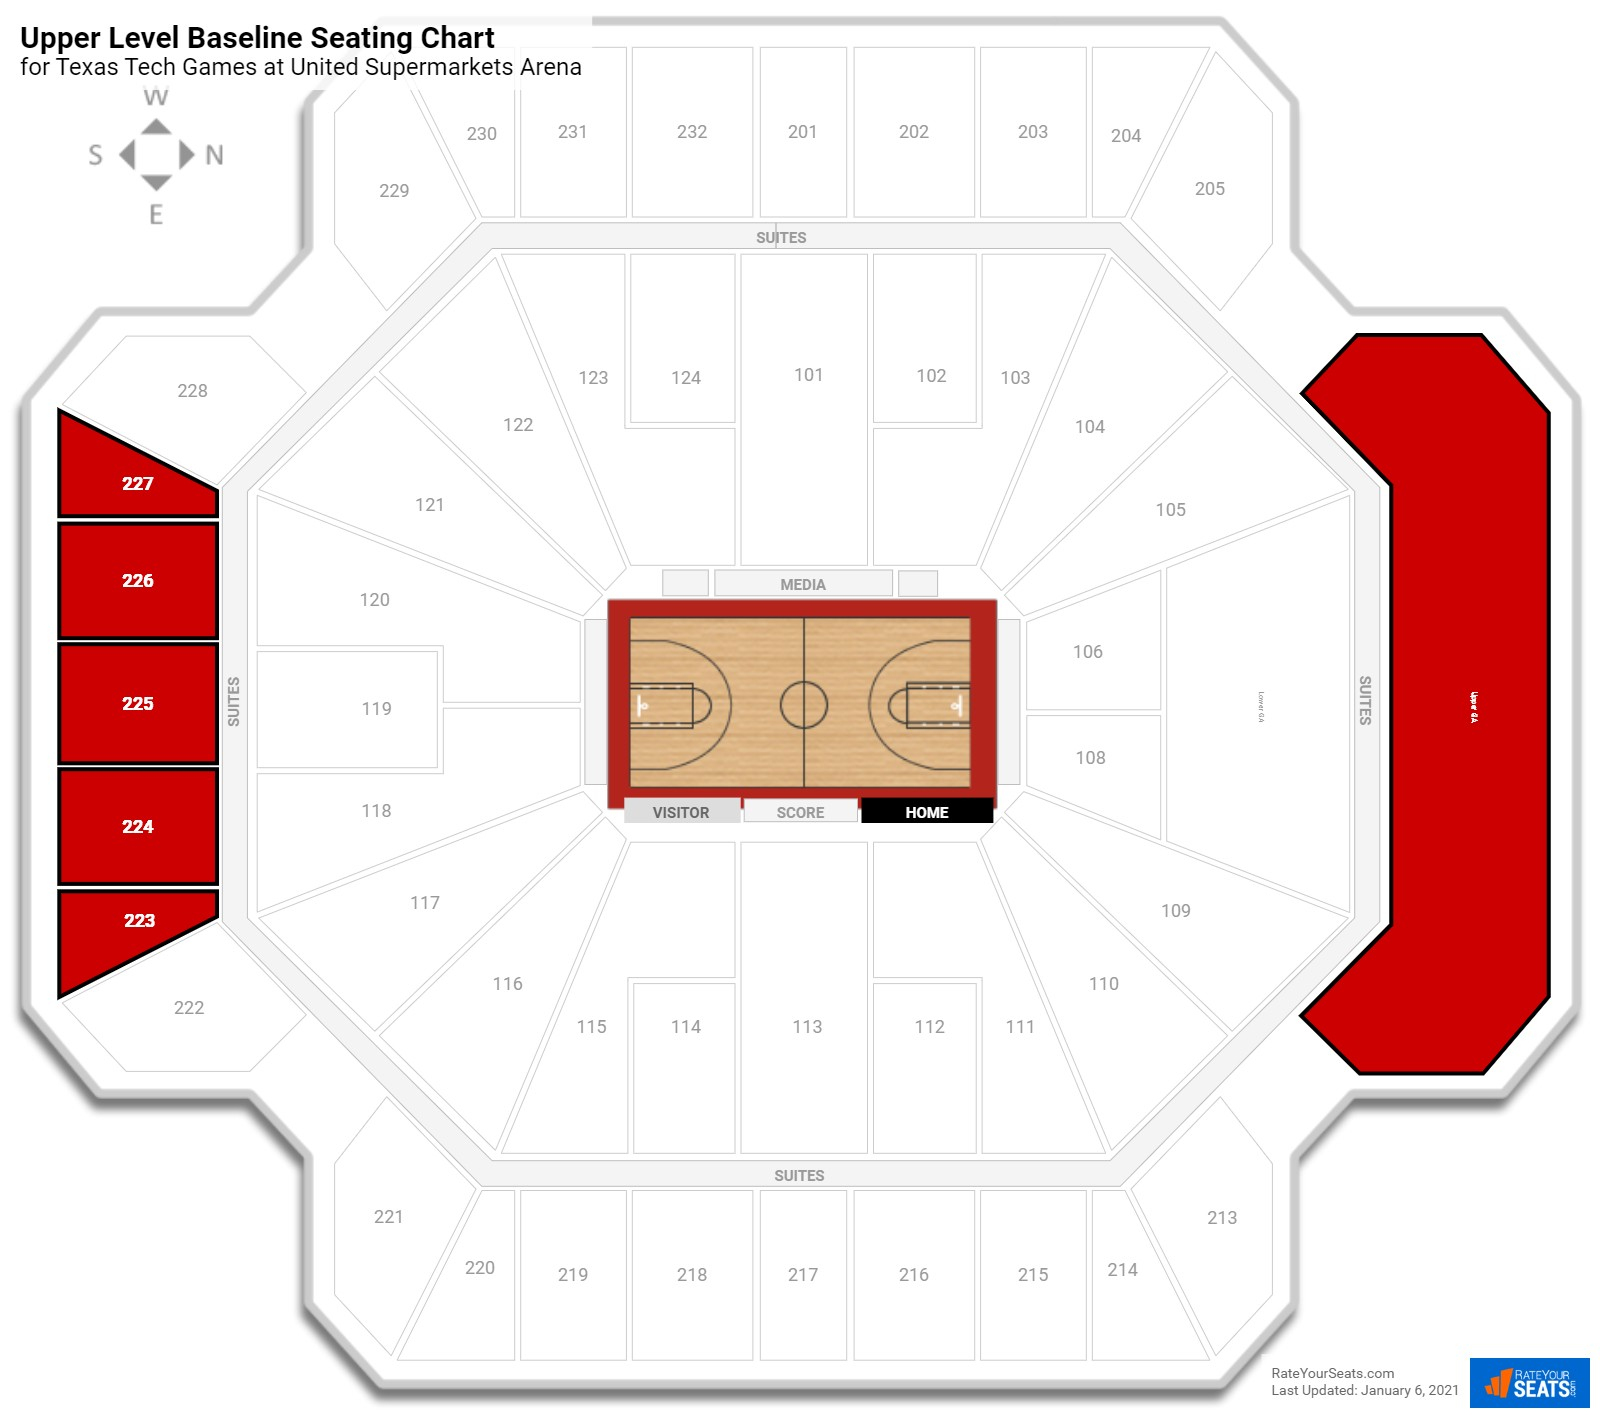 United supermarkets arena texas tech seating guide united supermarkets arena upper level baseline seating chart pooptronica